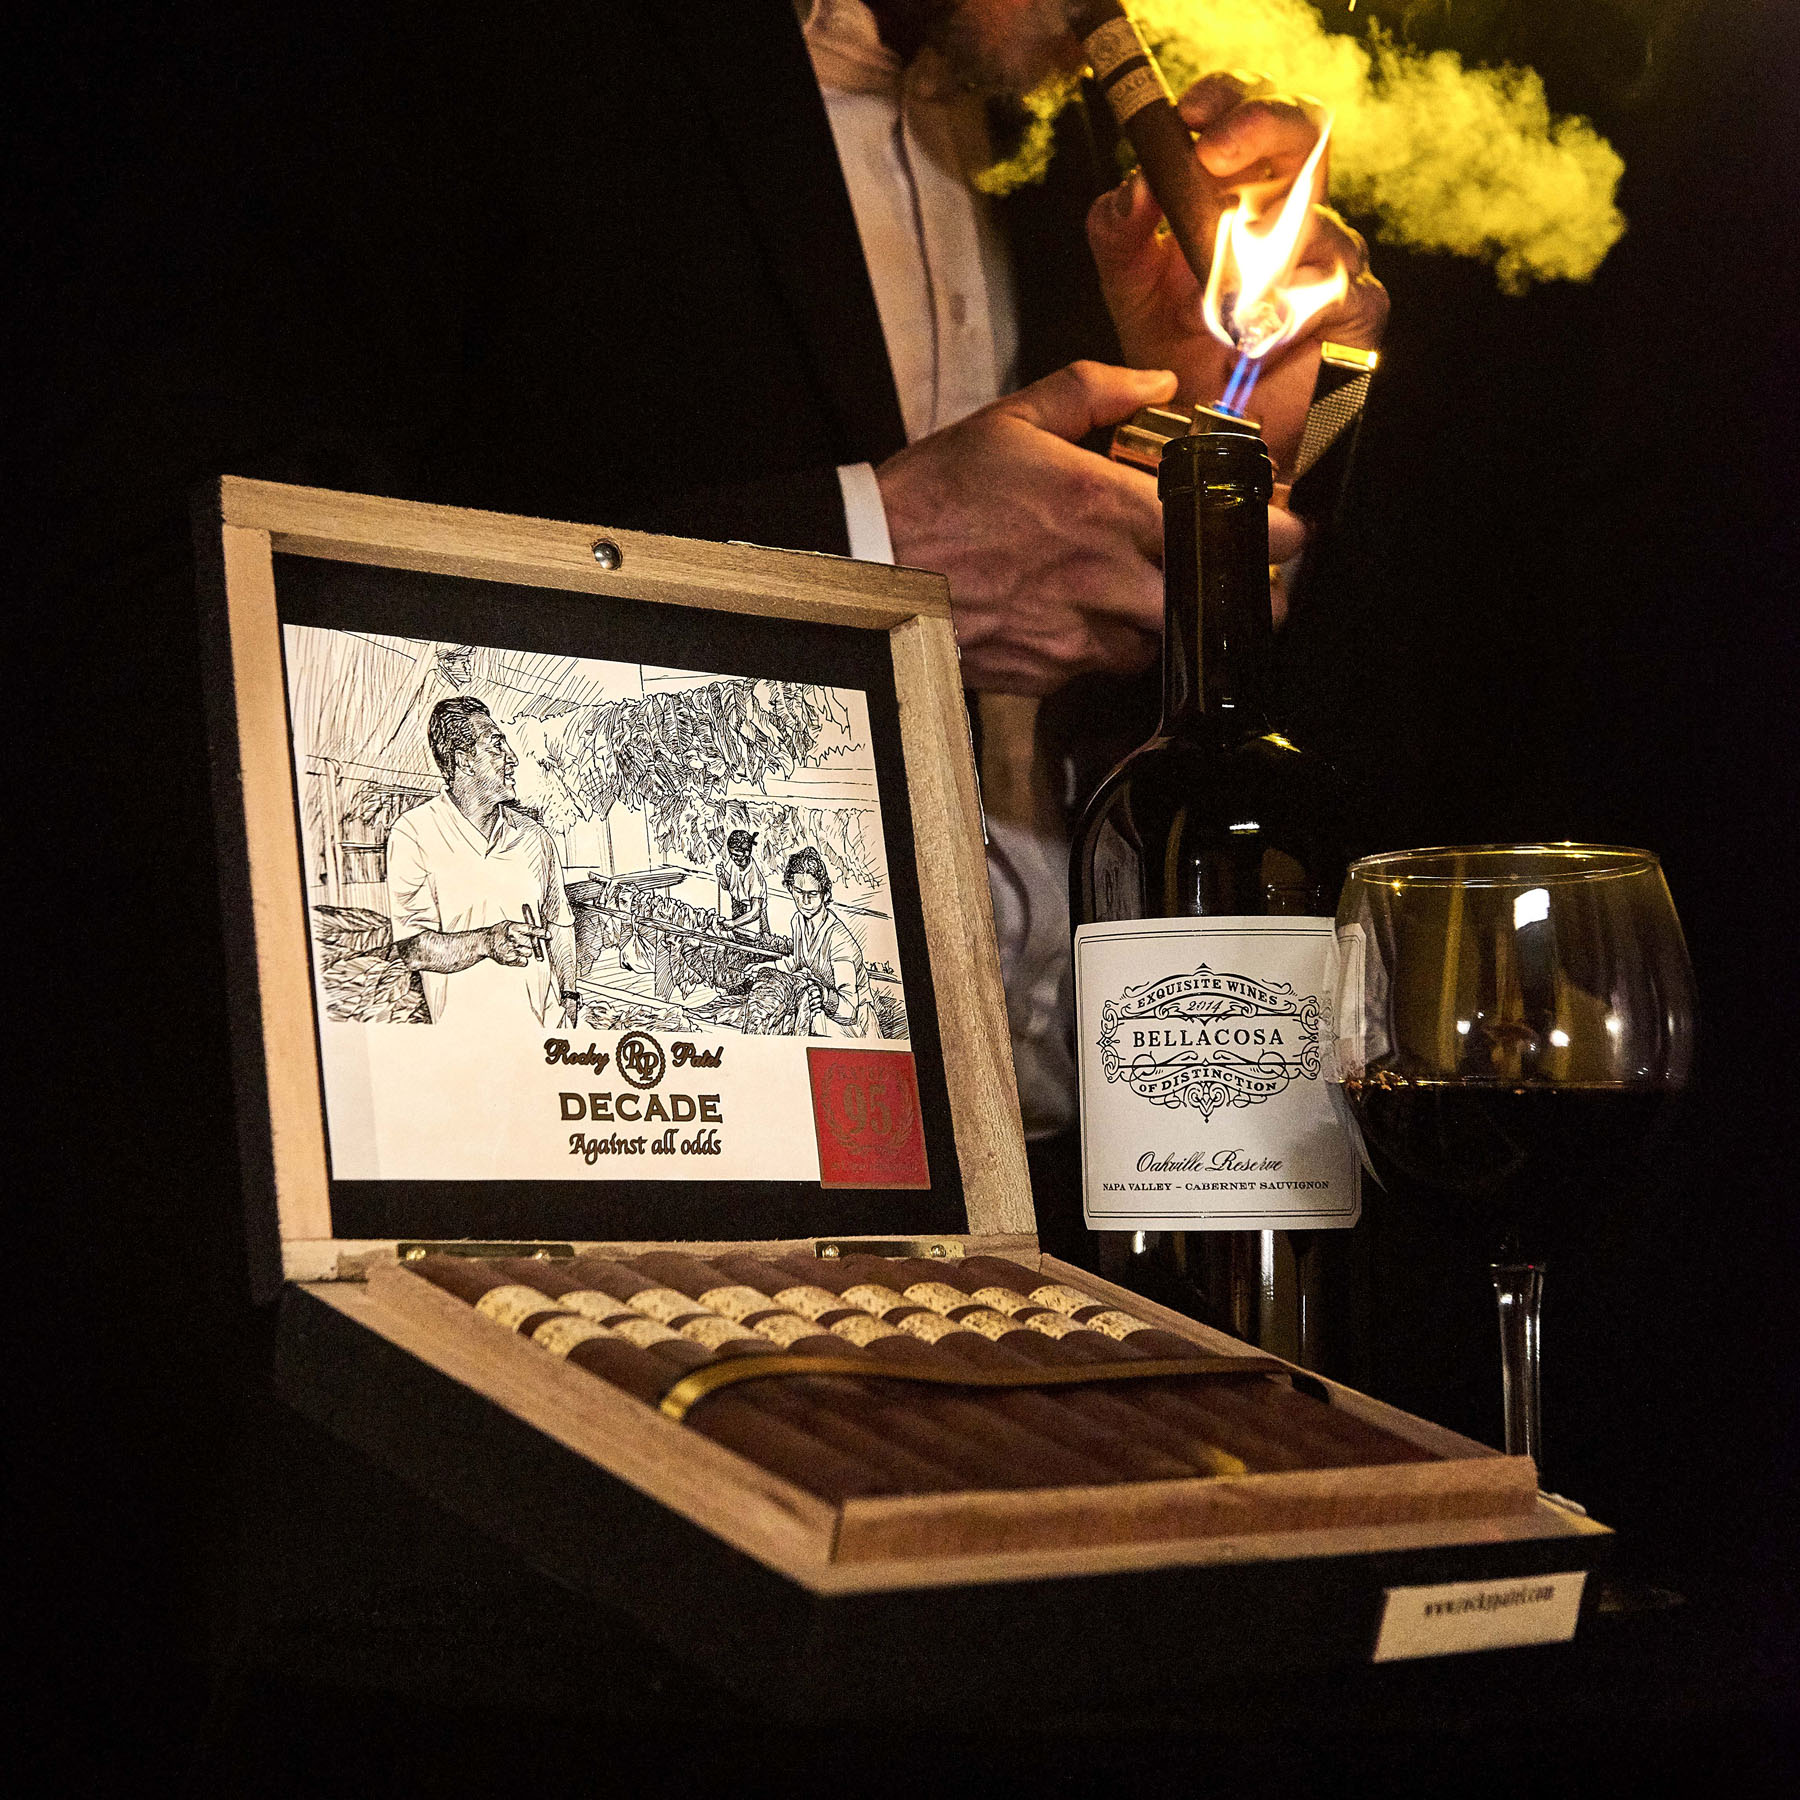 rocky patel decade cigars international shipping image